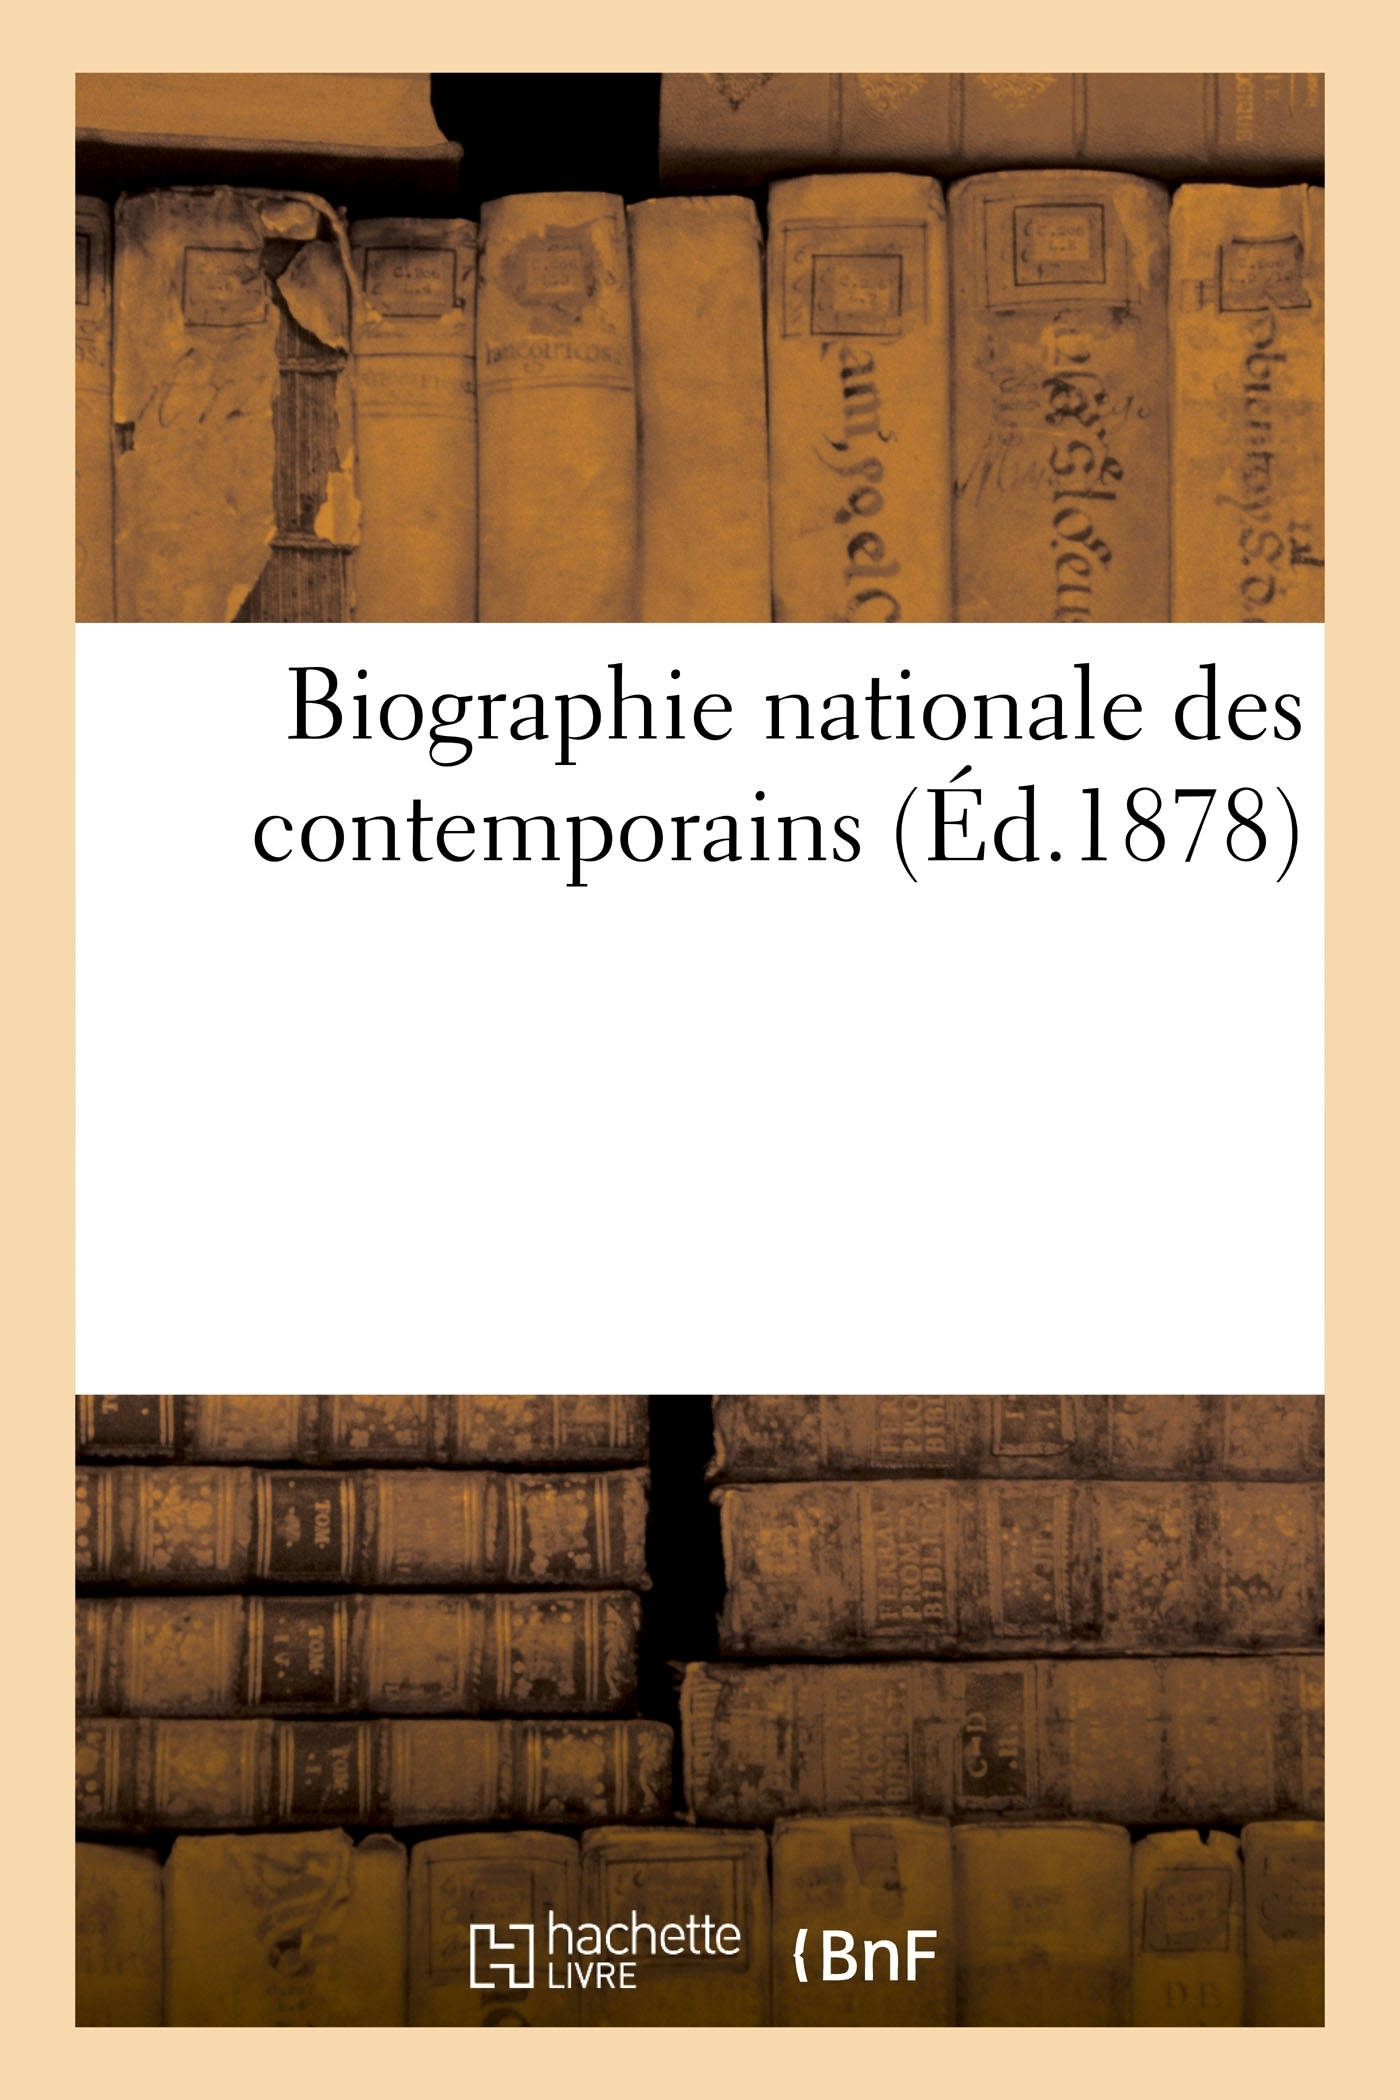 BIOGRAPHIE NATIONALE DES CONTEMPORAINS